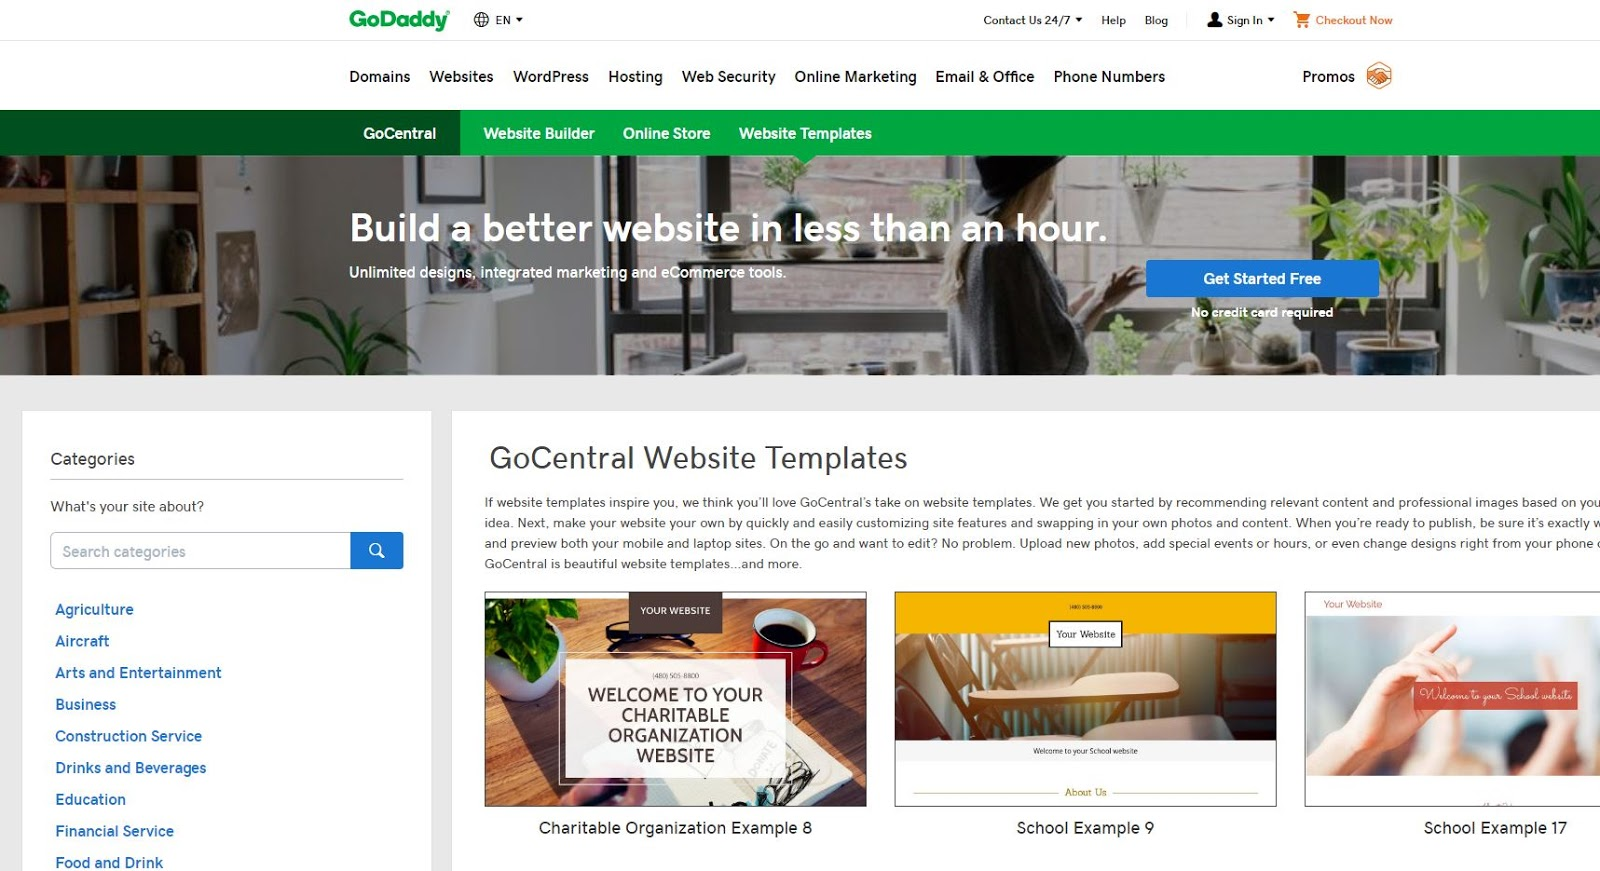 Squarespace vs godaddy a bloggers guide to the best website builder squarespace vs godaddy gocentral a bloggers guide to the best website builder godaddy gocentral maxwellsz